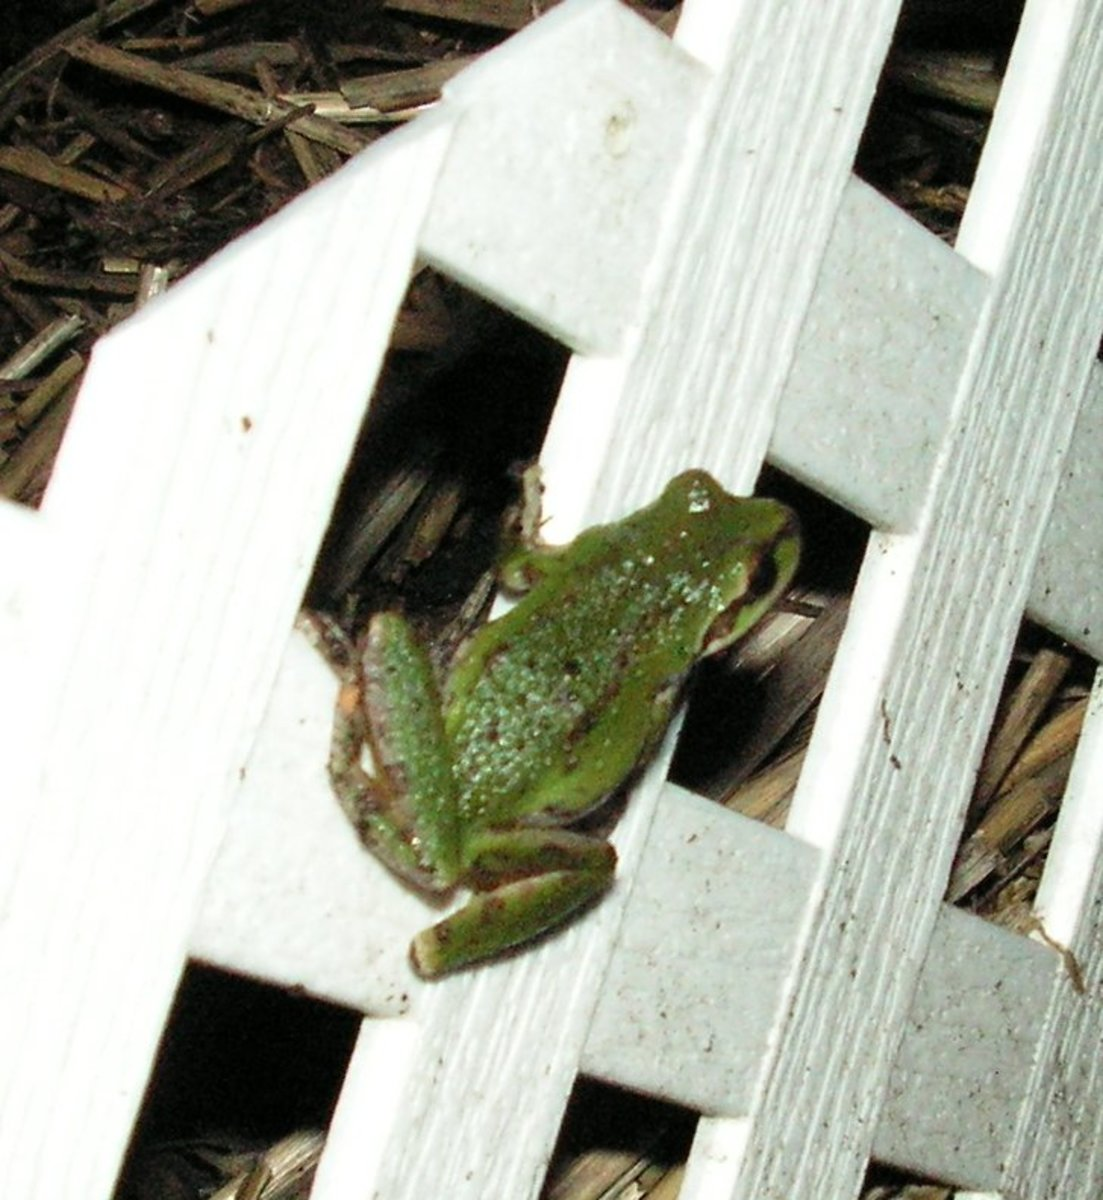 A small frog on one of our garden bed fences. We love having them in the garden.